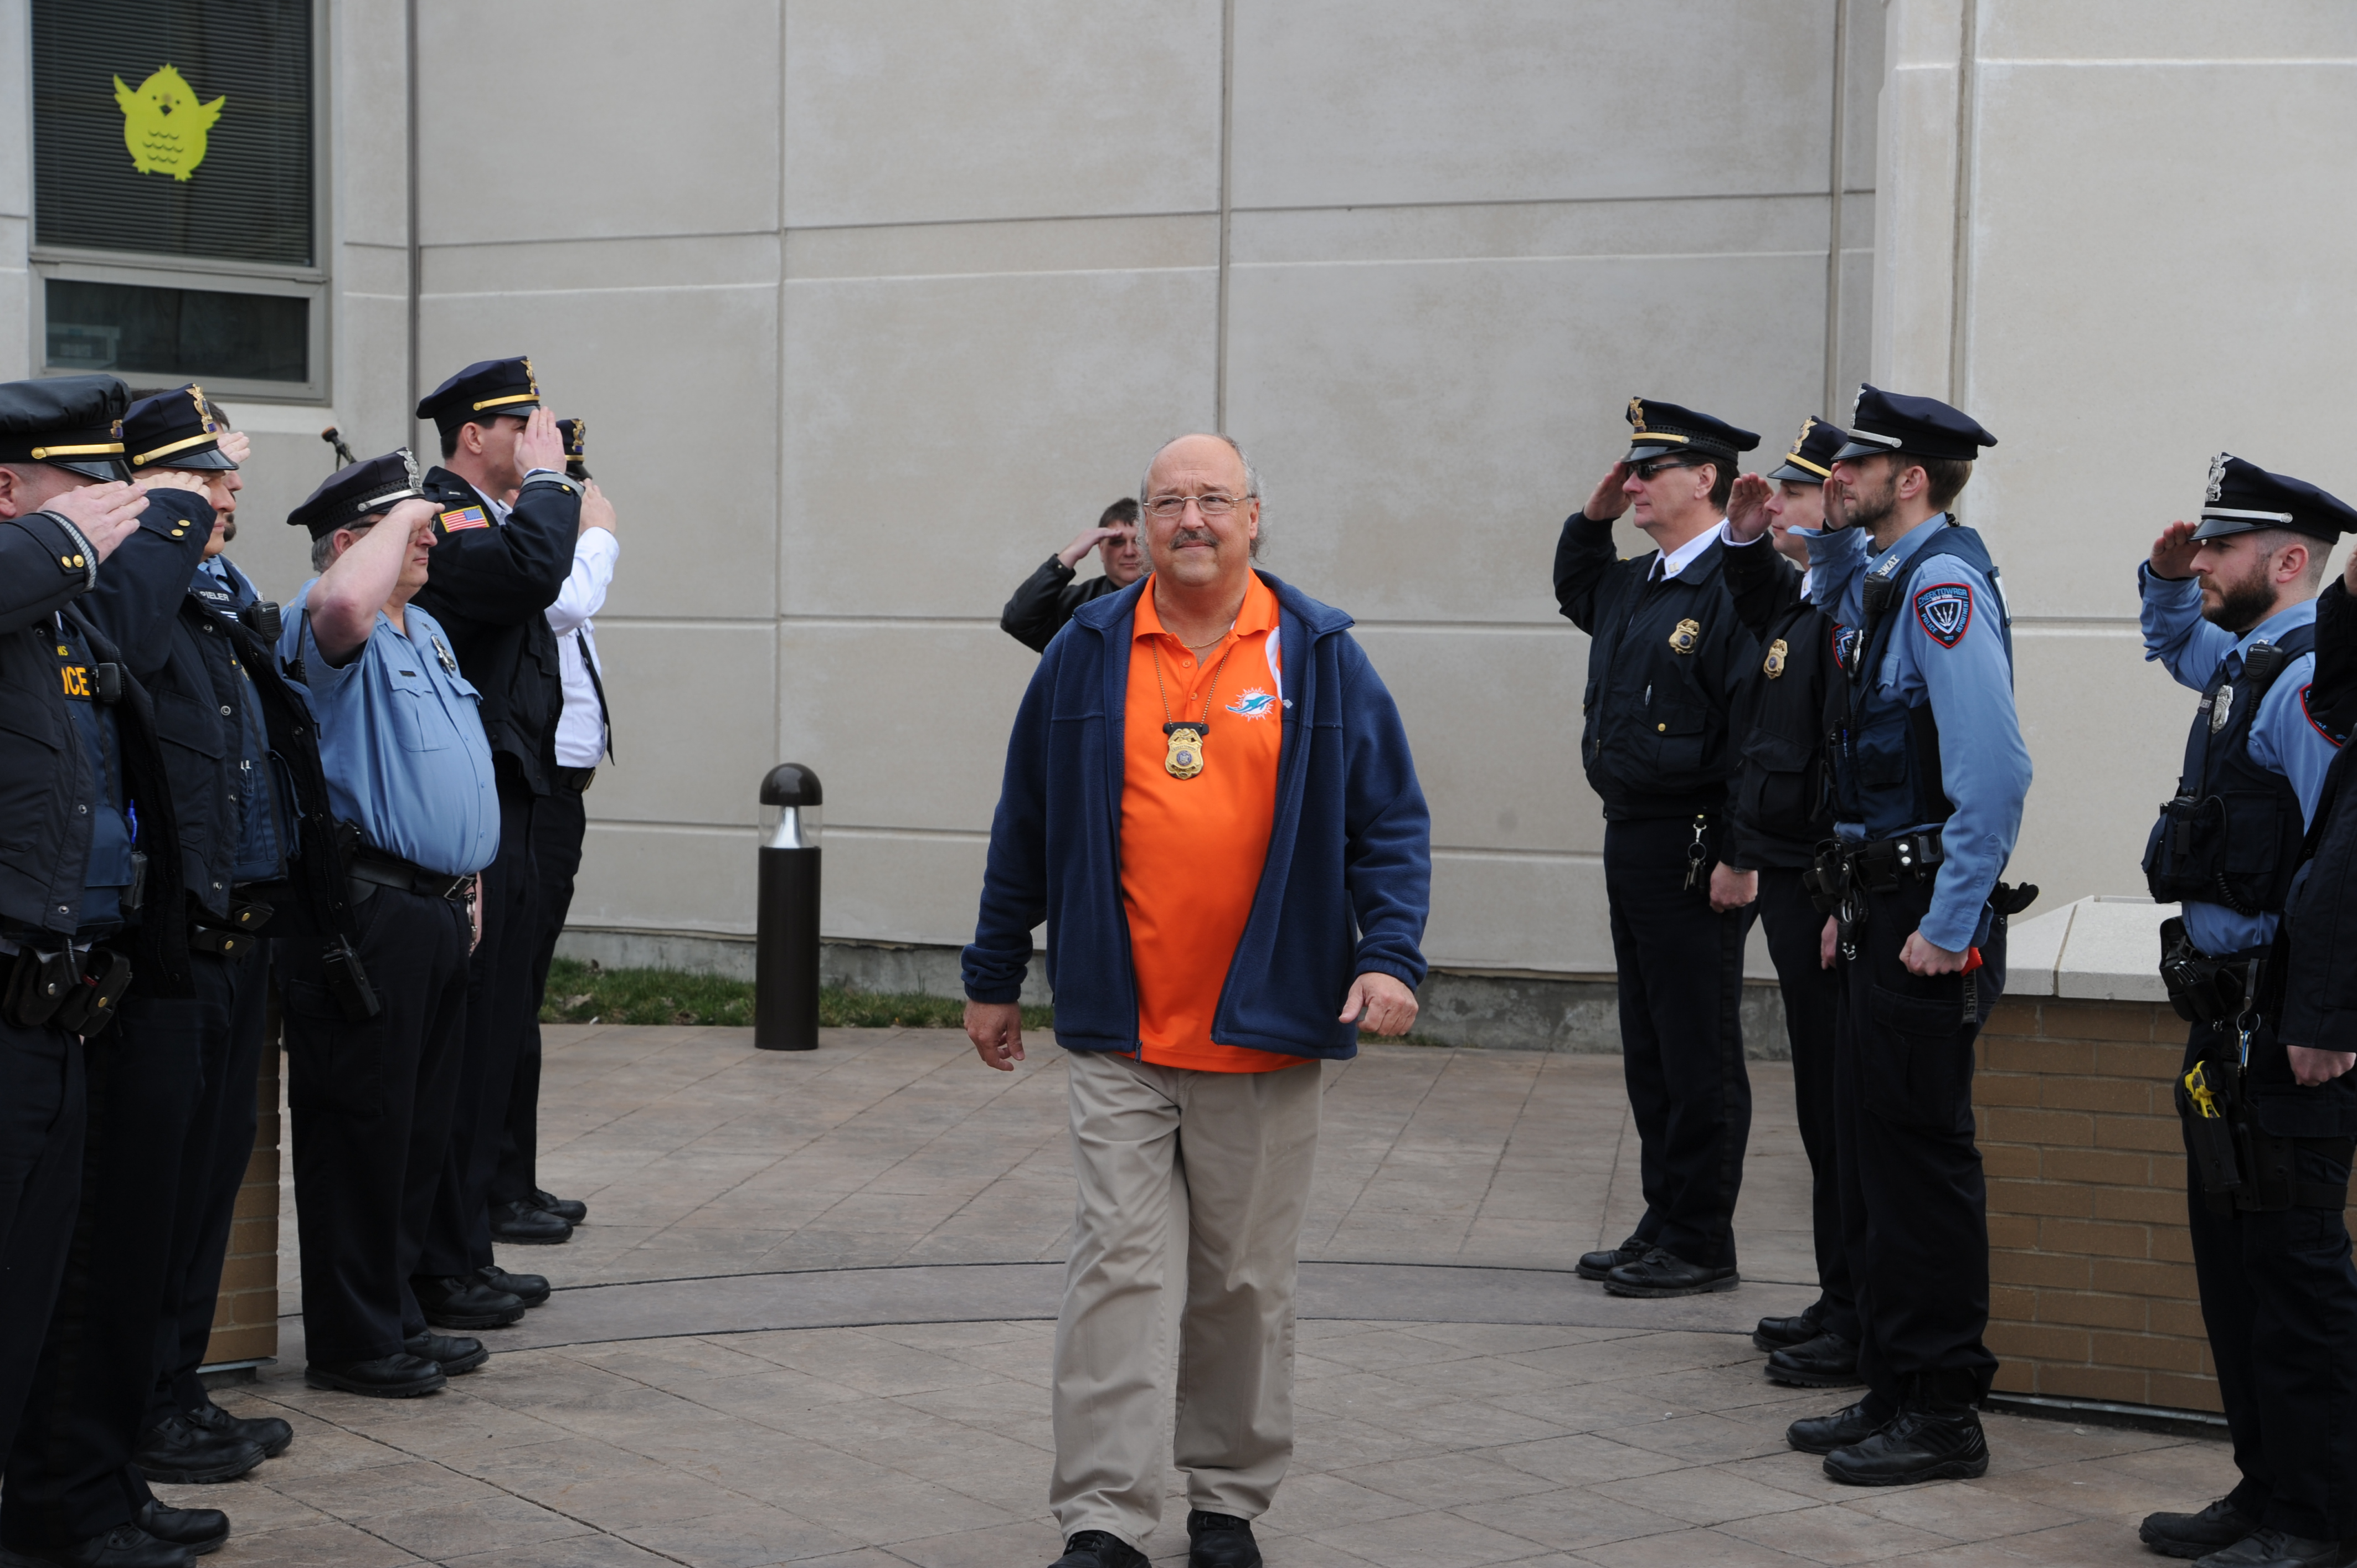 Retiring Cheektowaga Police Detective Mark Jedd receives a goodbye salute on his last day at the office.